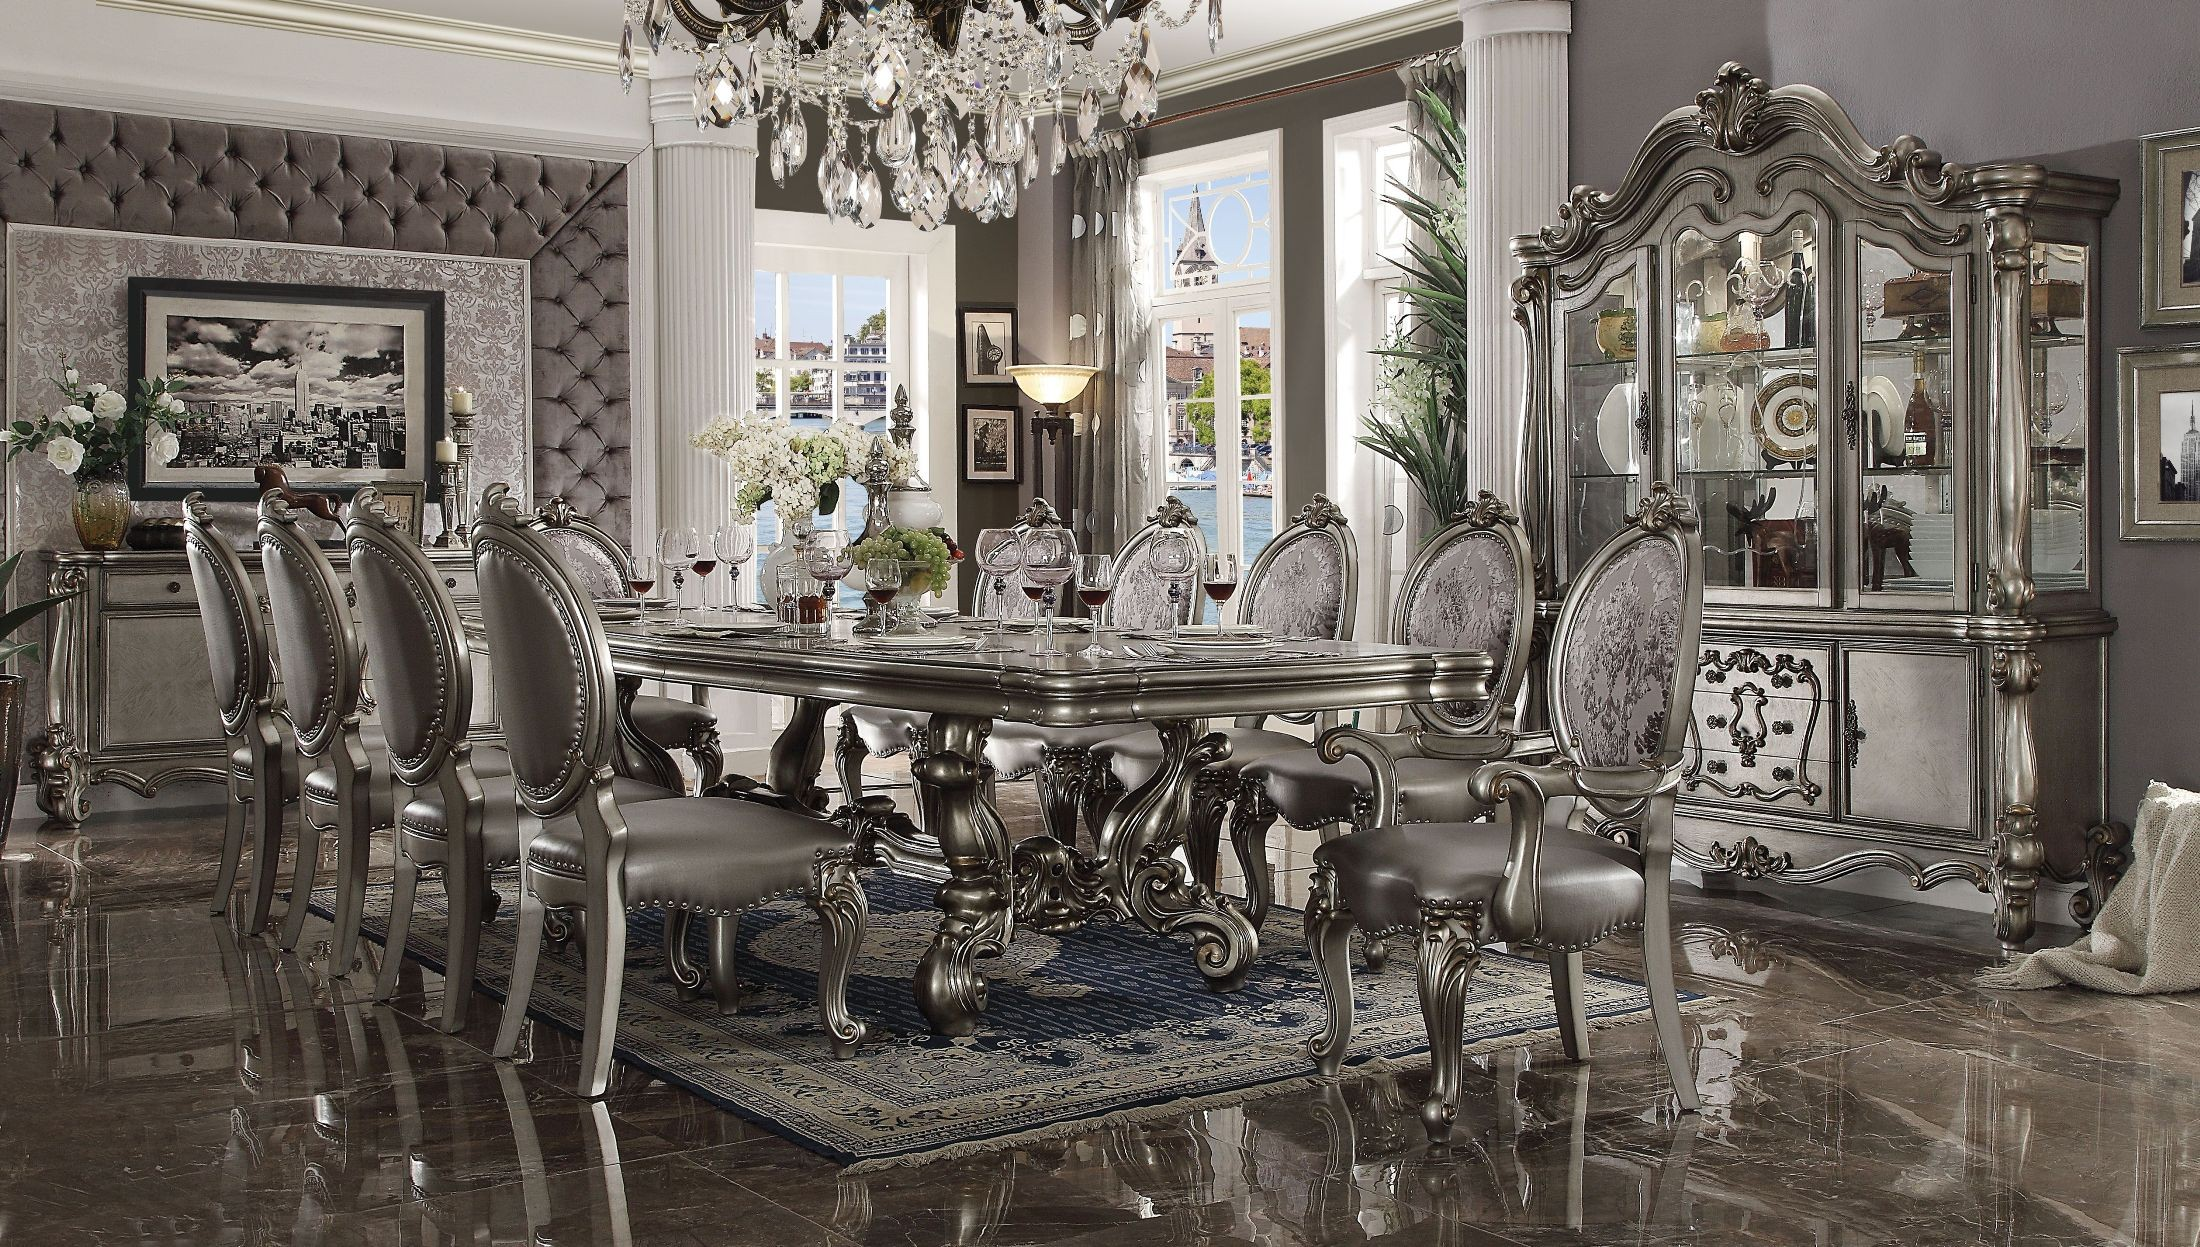 Stupendous Versailles Antique Platinum Extendable Rectangular Dining Room Set Home Interior And Landscaping Ponolsignezvosmurscom